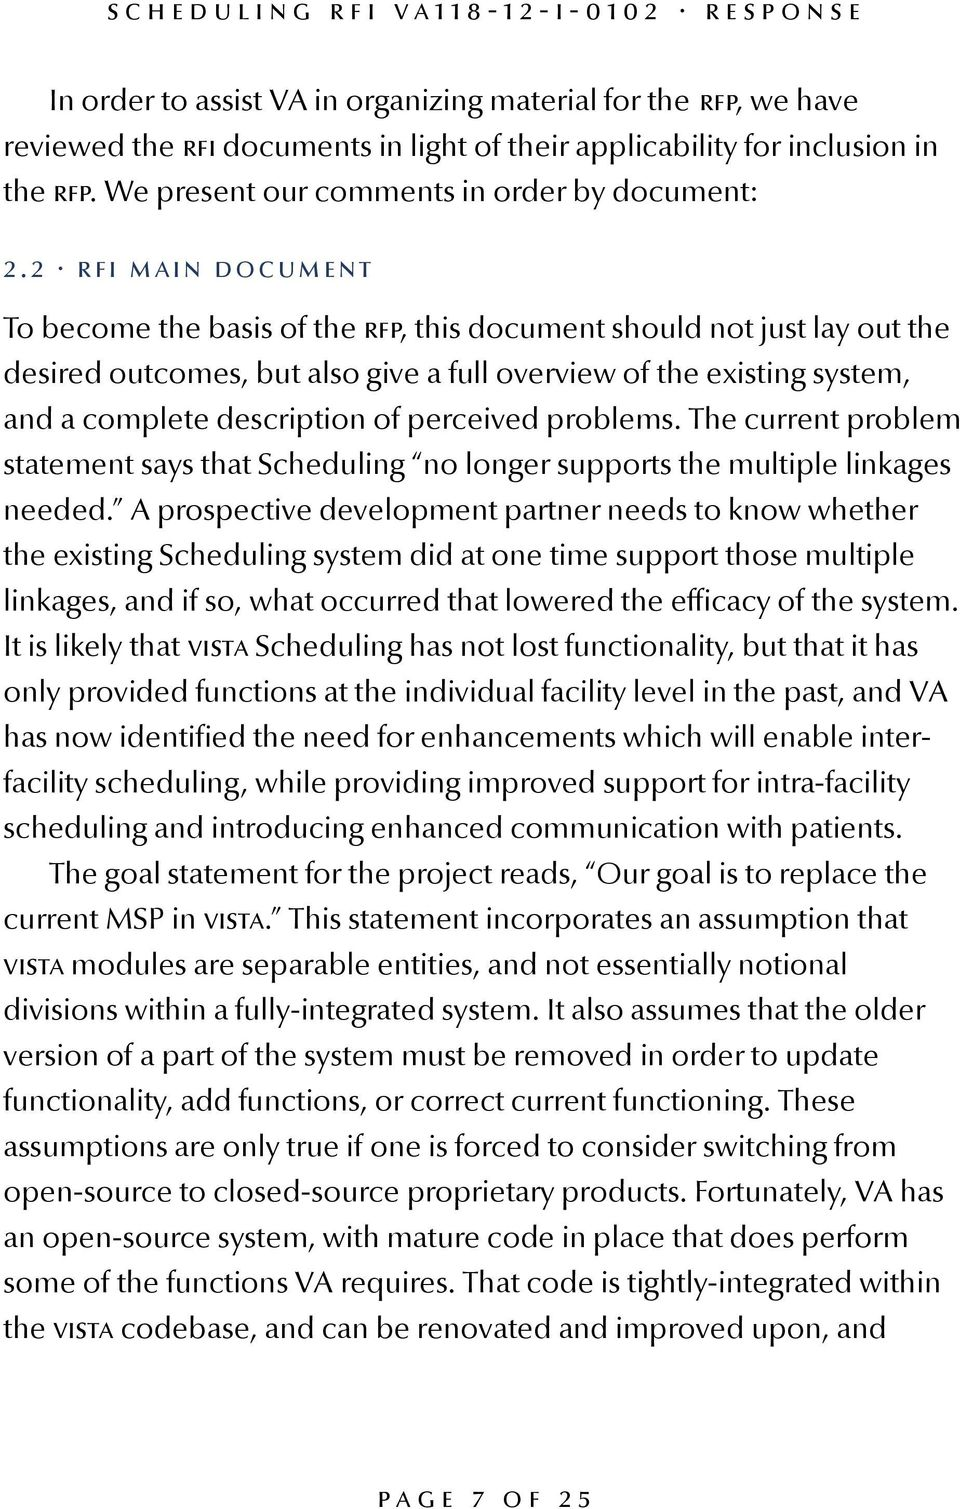 perceived problems. The current problem statement says that Scheduling no longer supports the multiple linkages needed.